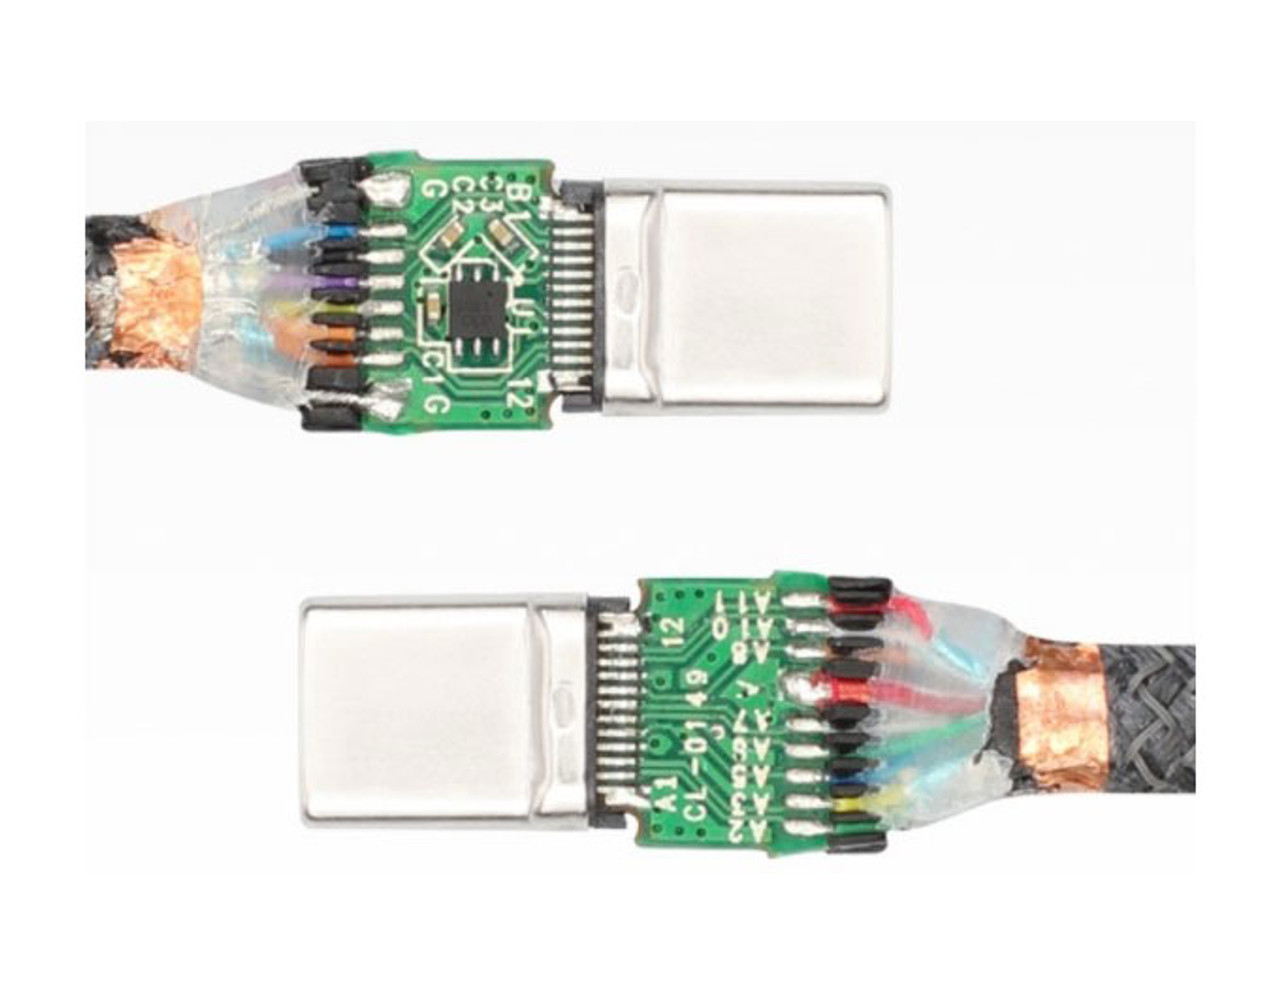 0.5M USB 3.1 GEN 2 Type-C M/M Cable supports 10Gbps/100W